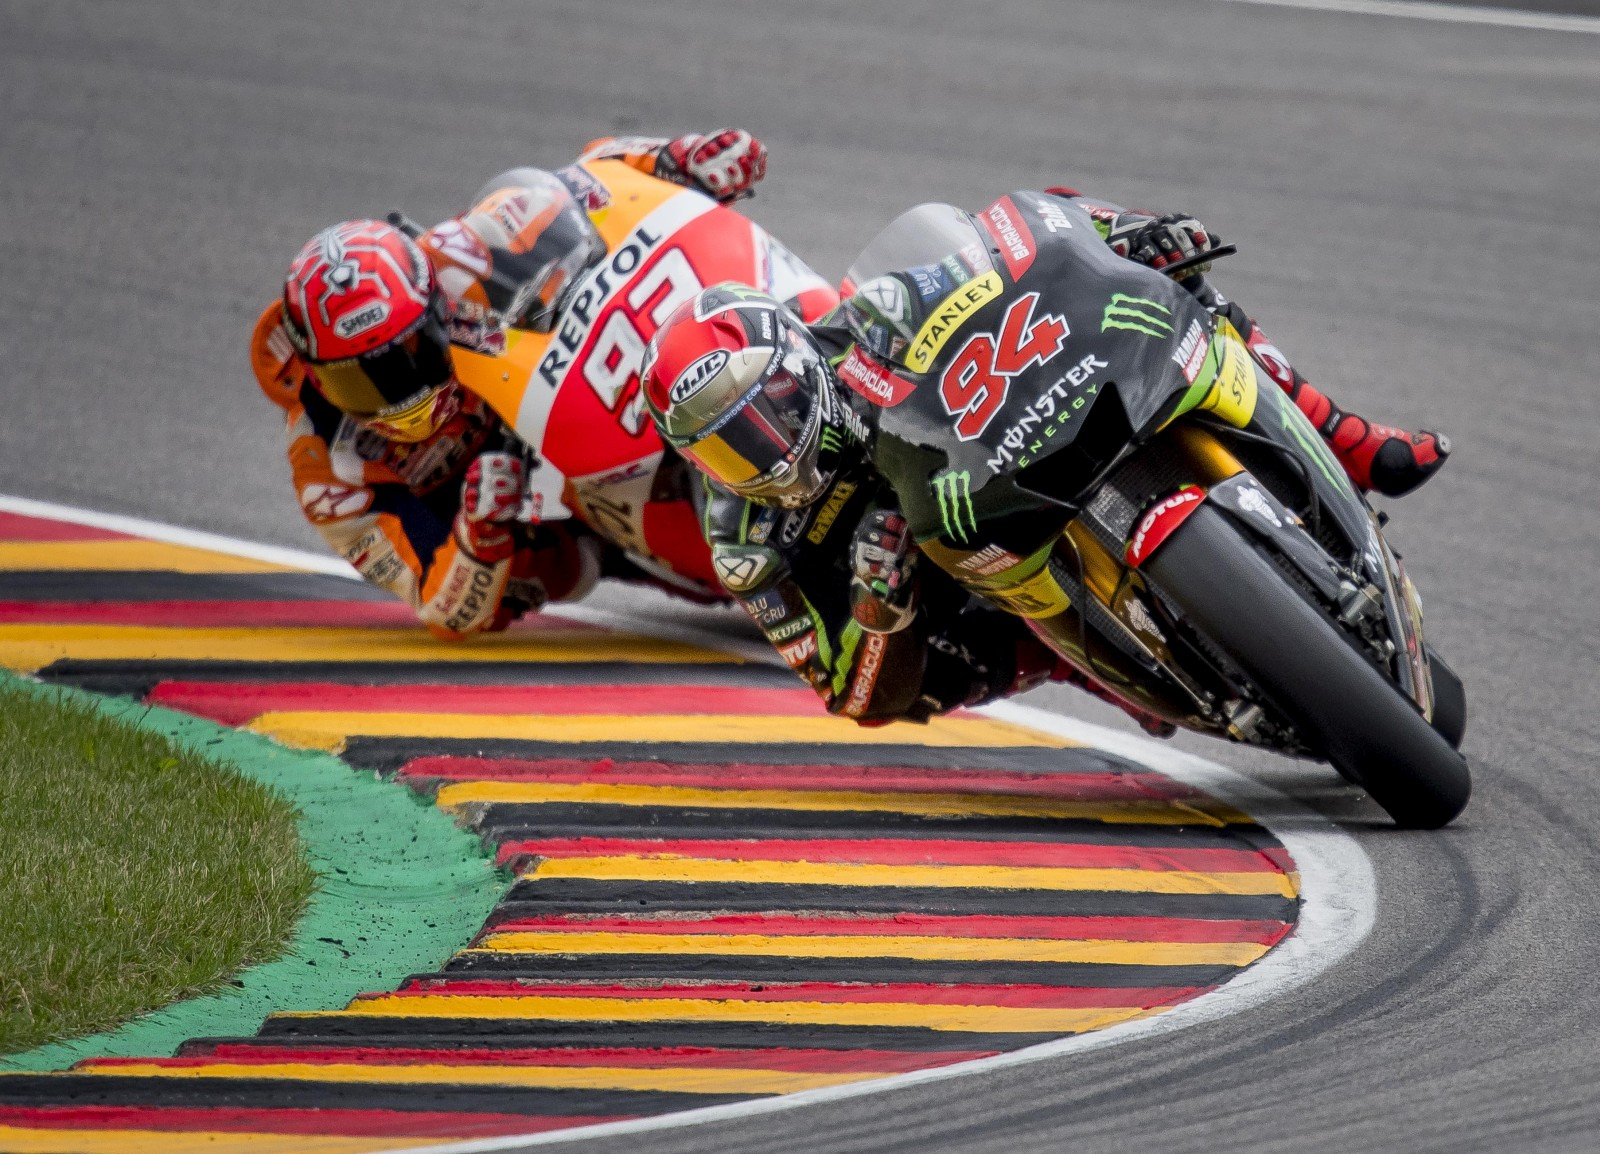 Marquez on pole in Germany for eighth year in a row